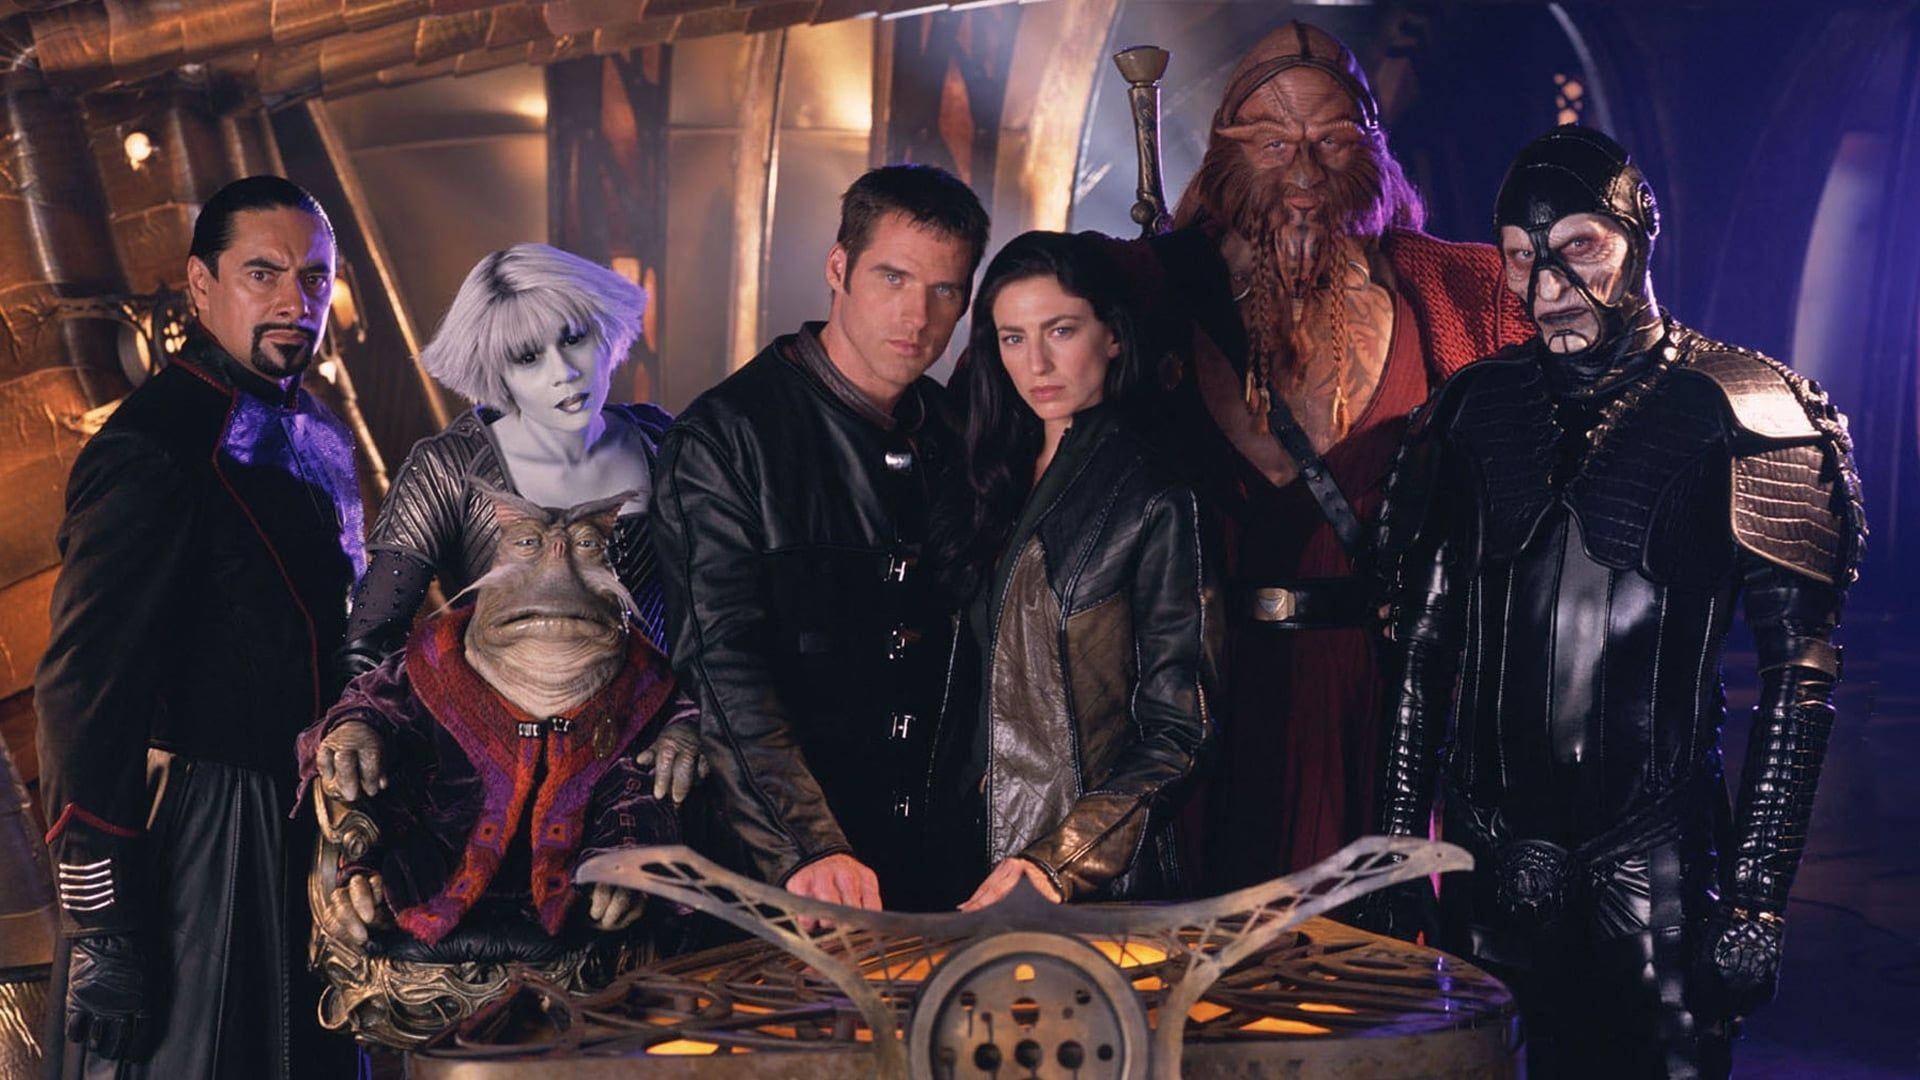 Farscape Watch Episodes On Prime Video Or Streaming Online